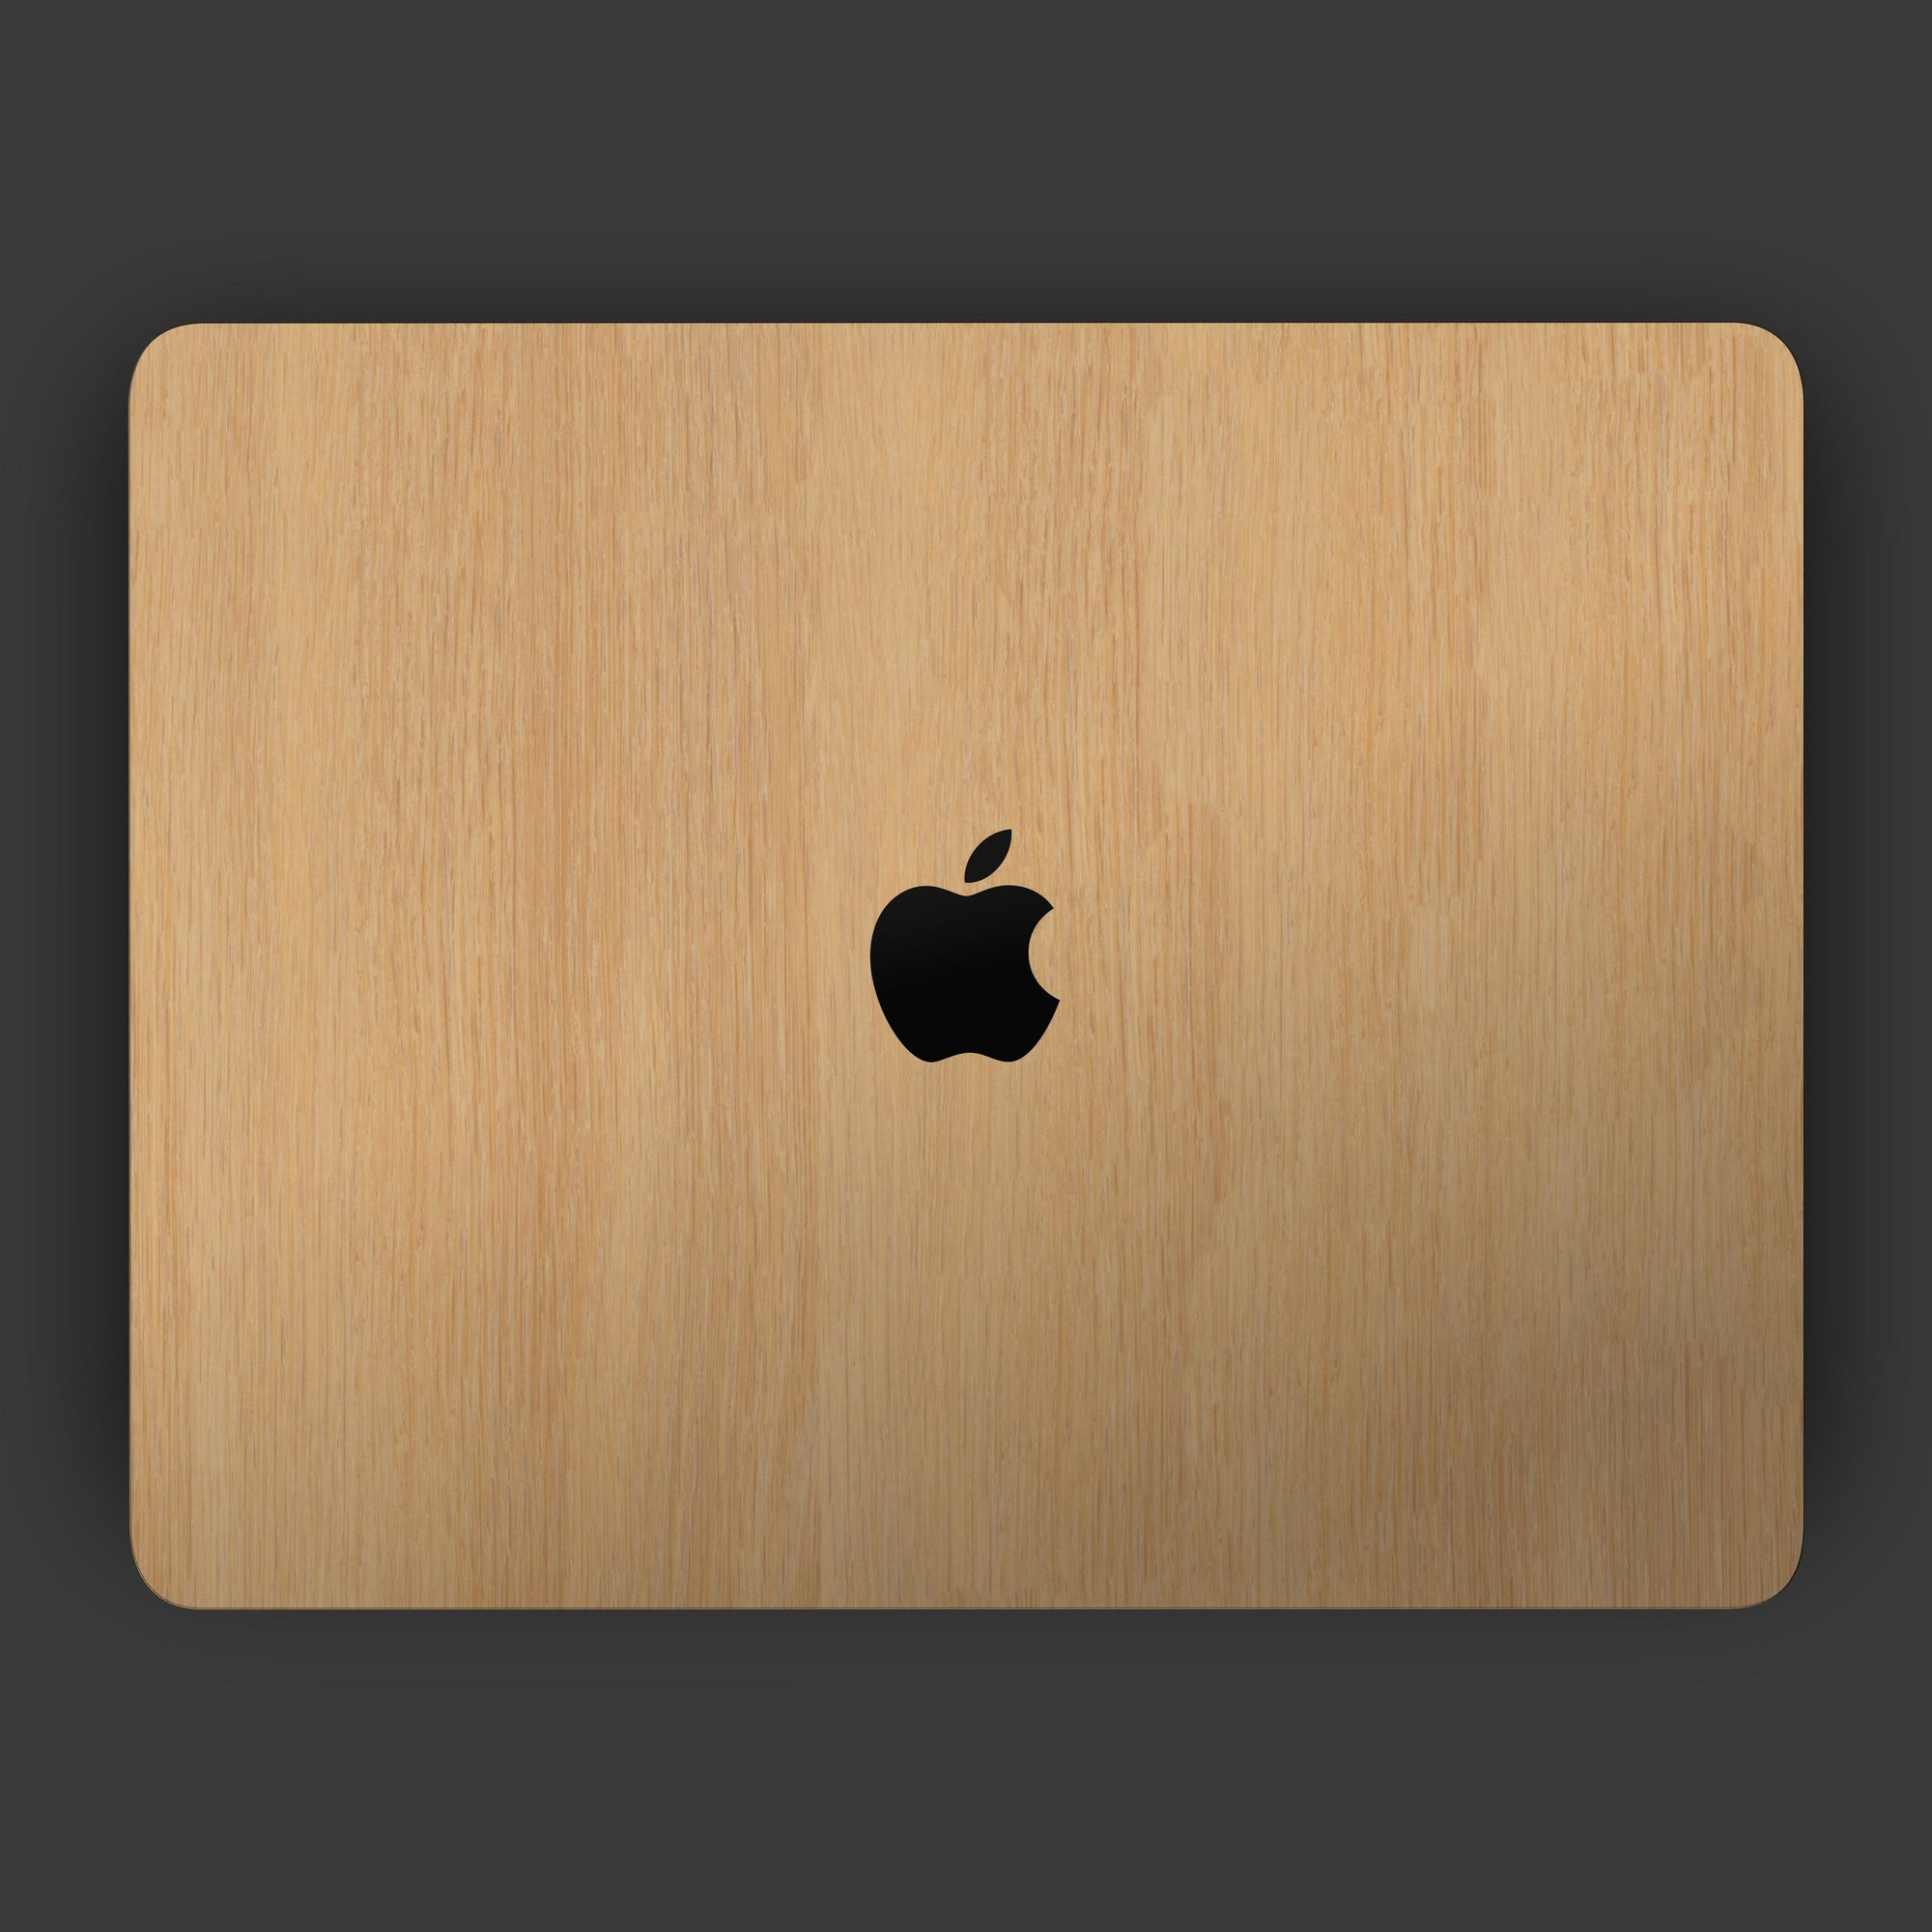 macbook-pro-13-retina-2012-2015-mit-Apple-Logo-in-Buche